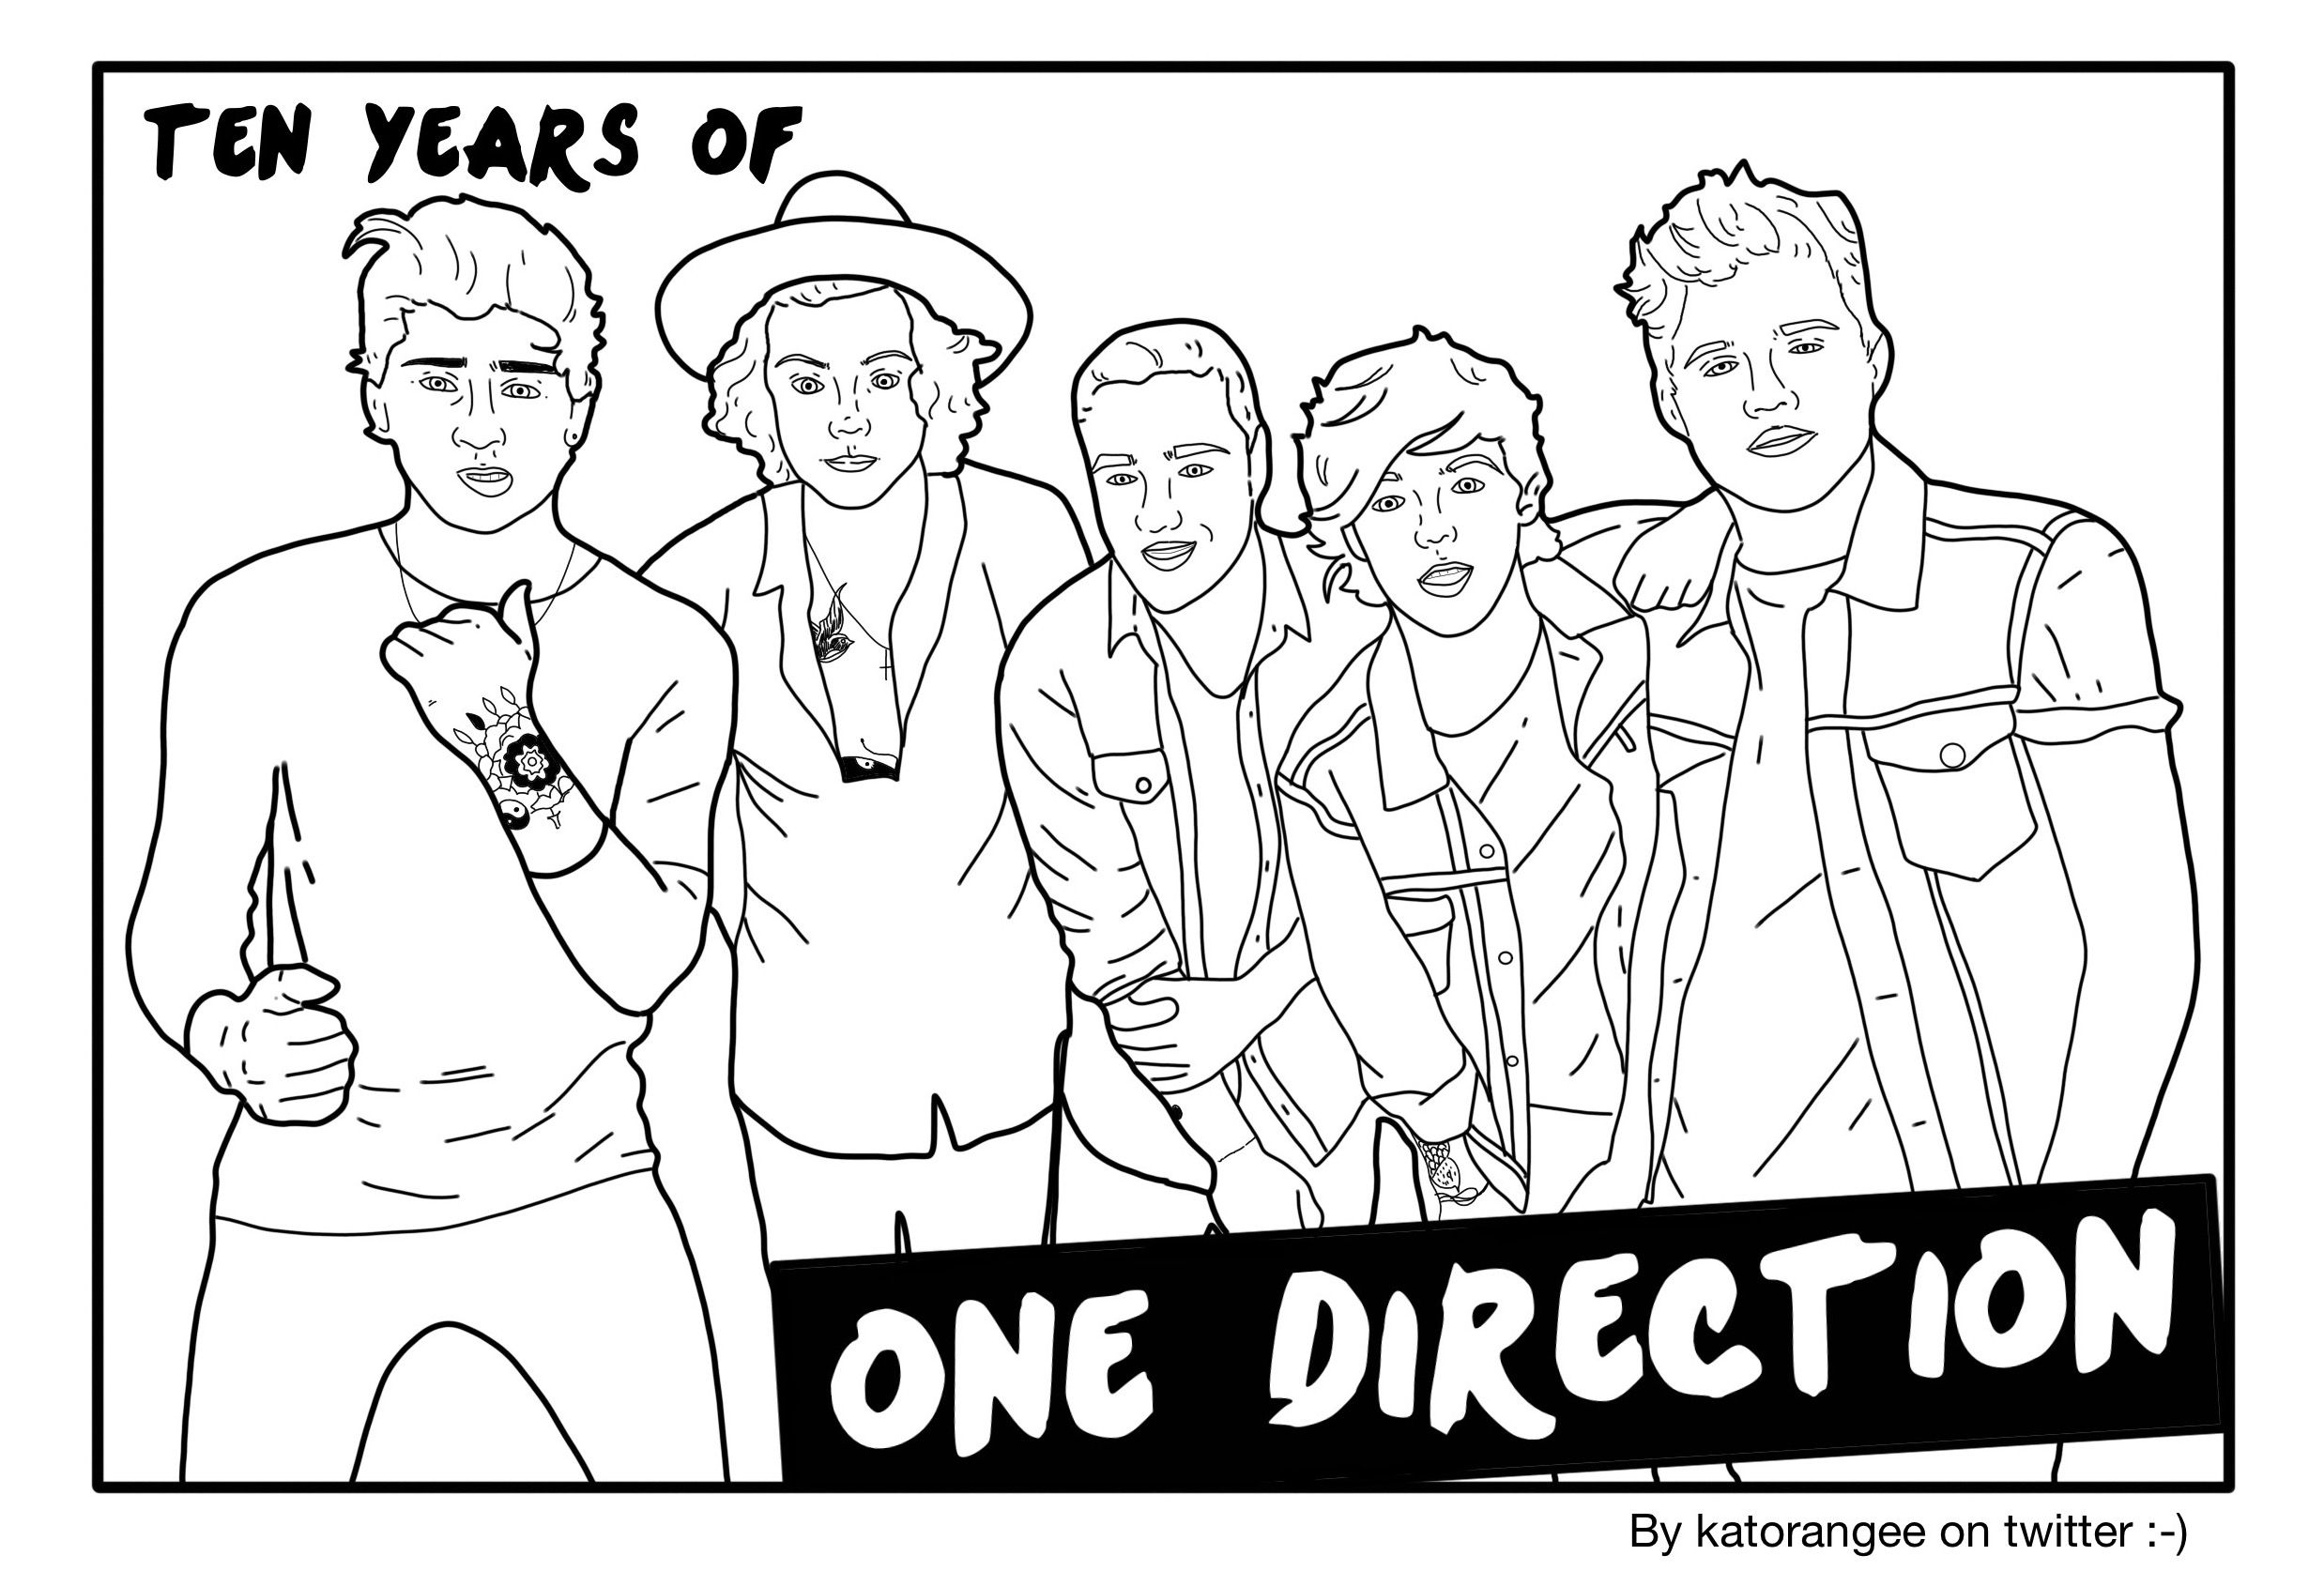 One Direction Coloring Page One Direction Drawings One Direction Coloring Pages